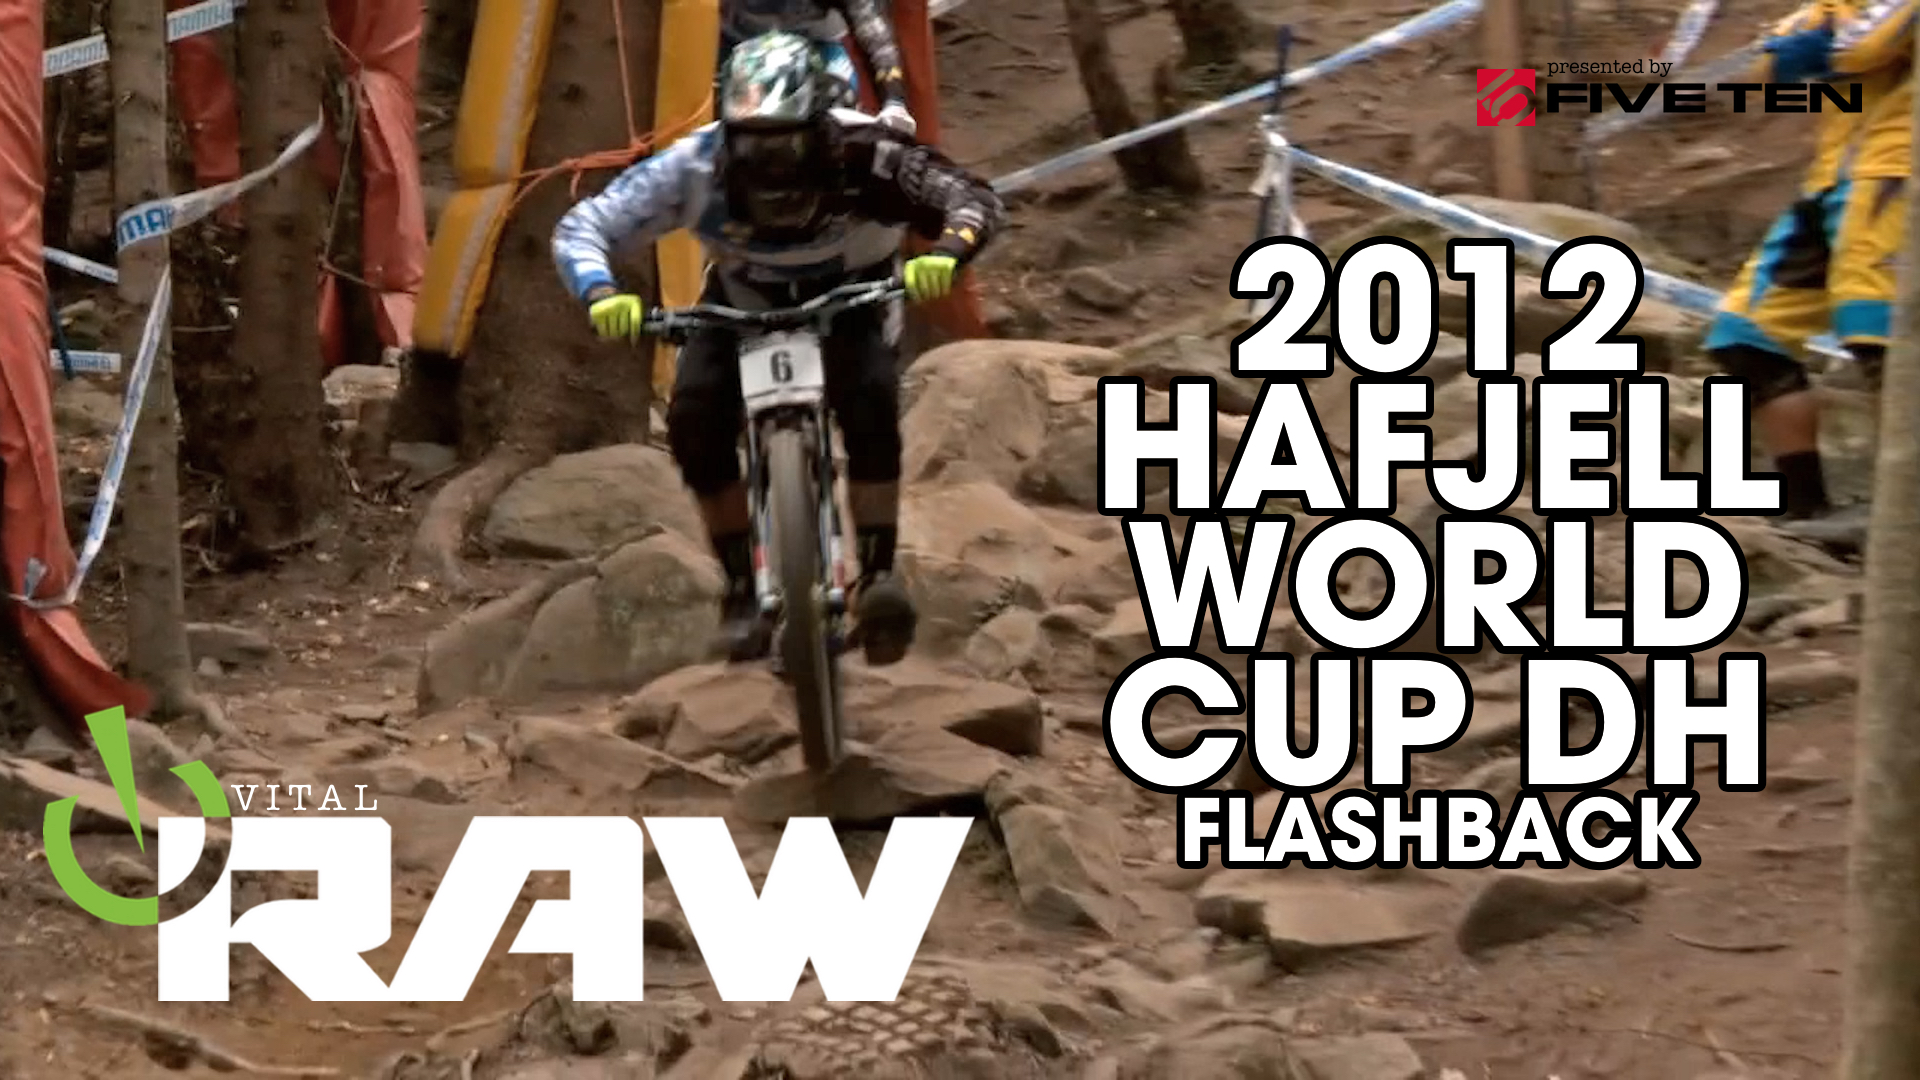 Sam Hill, Steve Peat, Stevie Smith - Vital RAW FLASHBACK - 2013 Hafjell World Cup DH